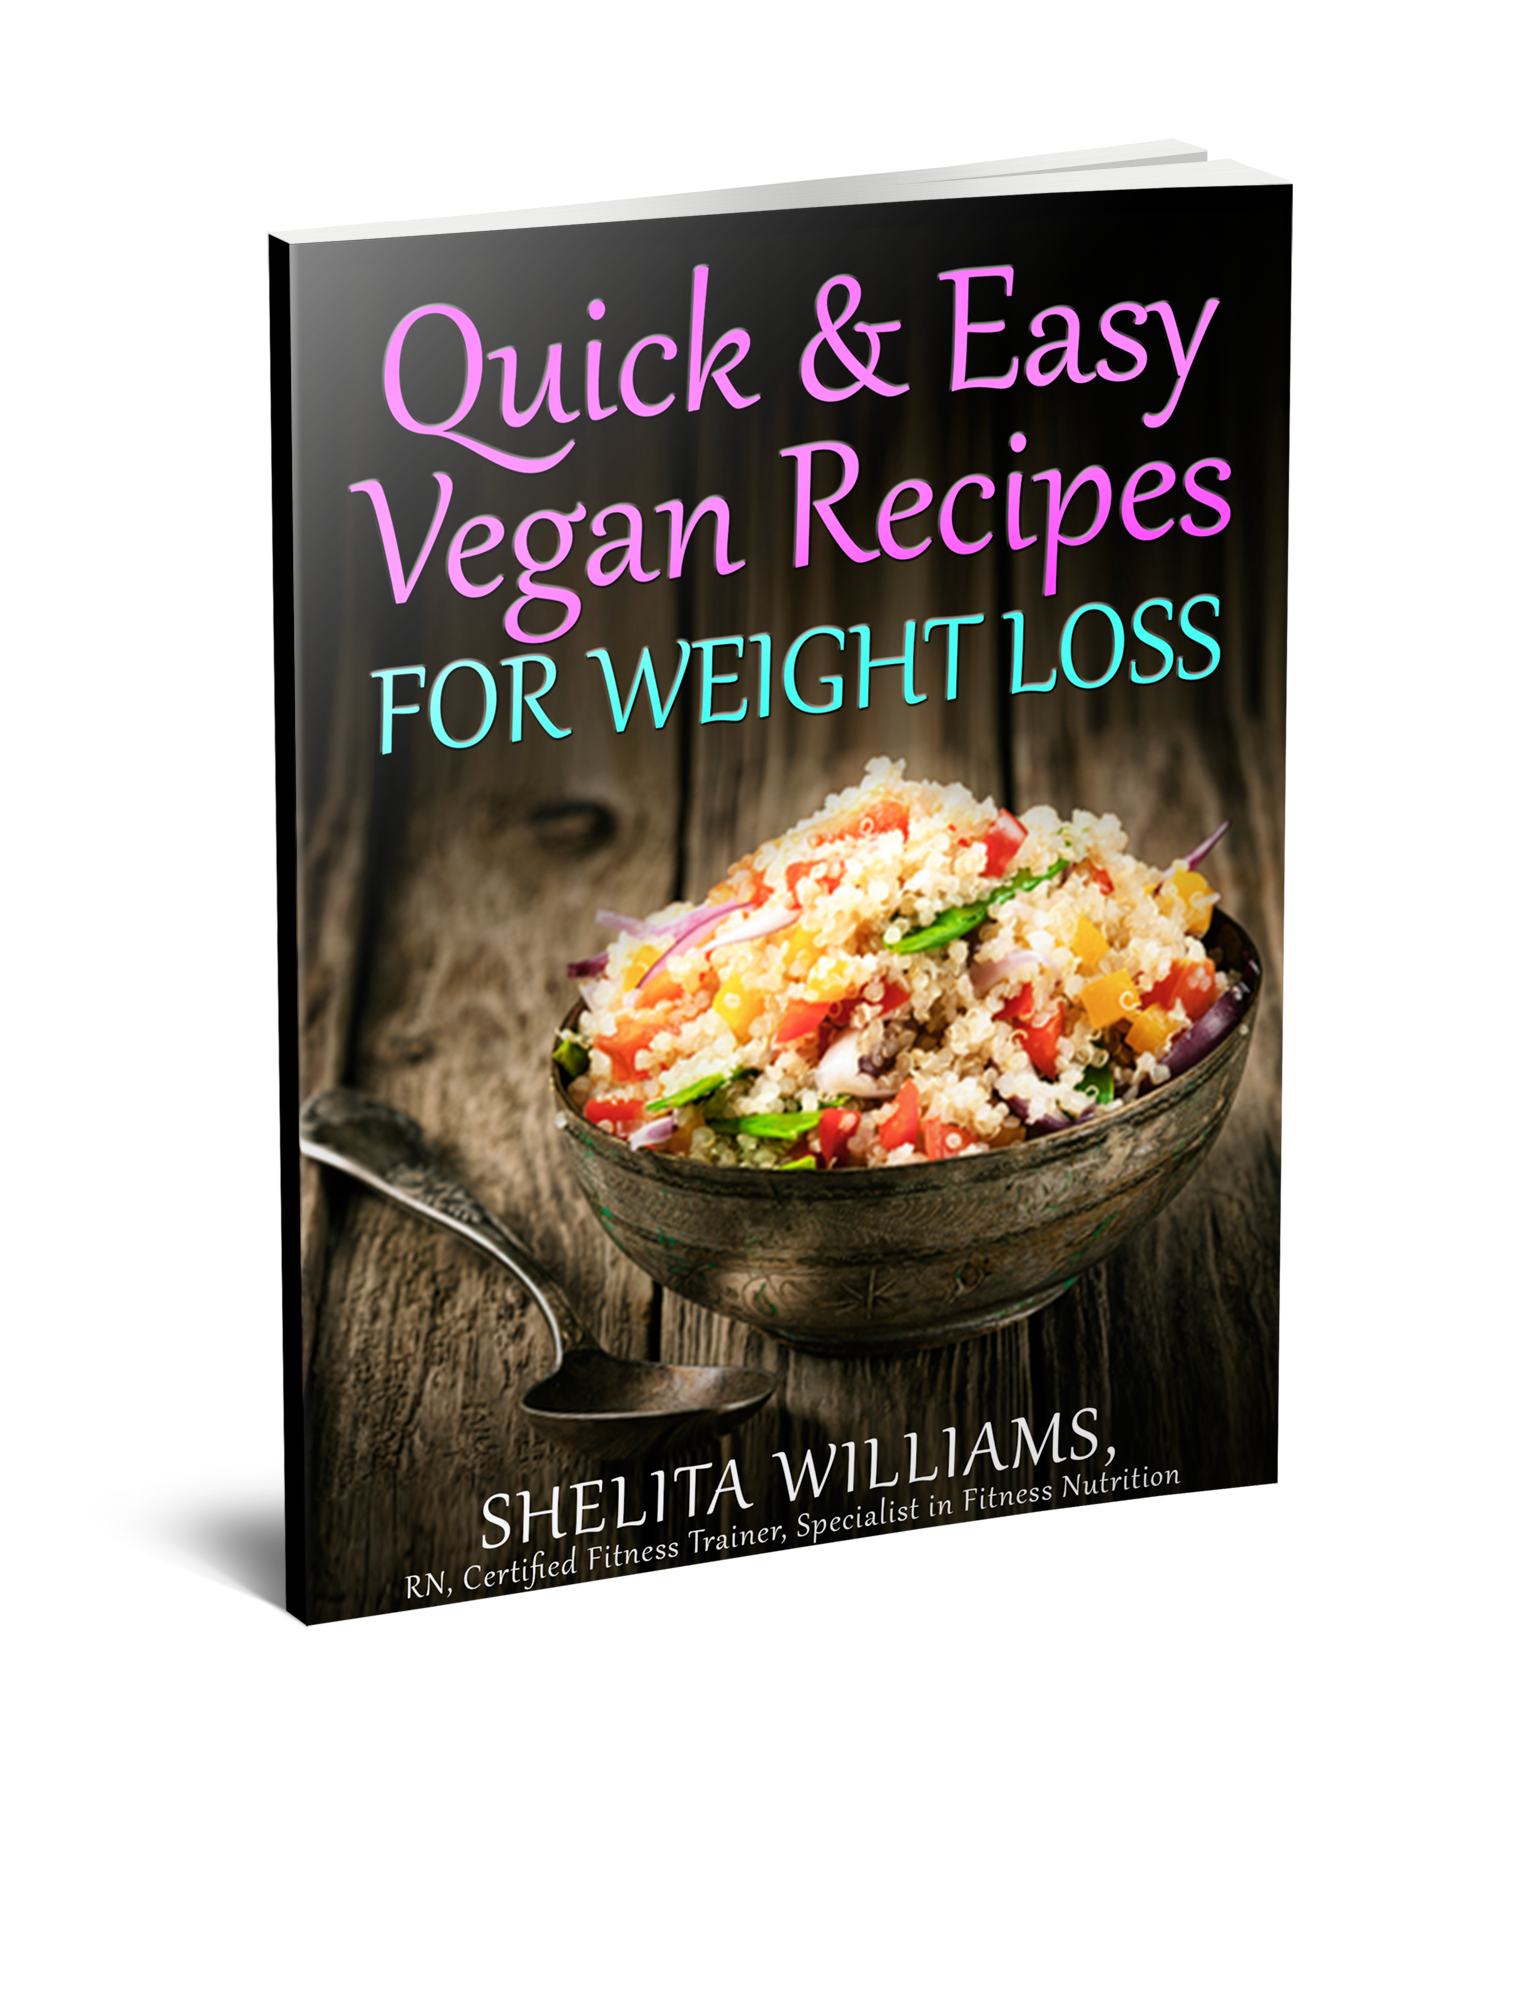 Quick & Easy Vegan Recipes for Weight Loss!